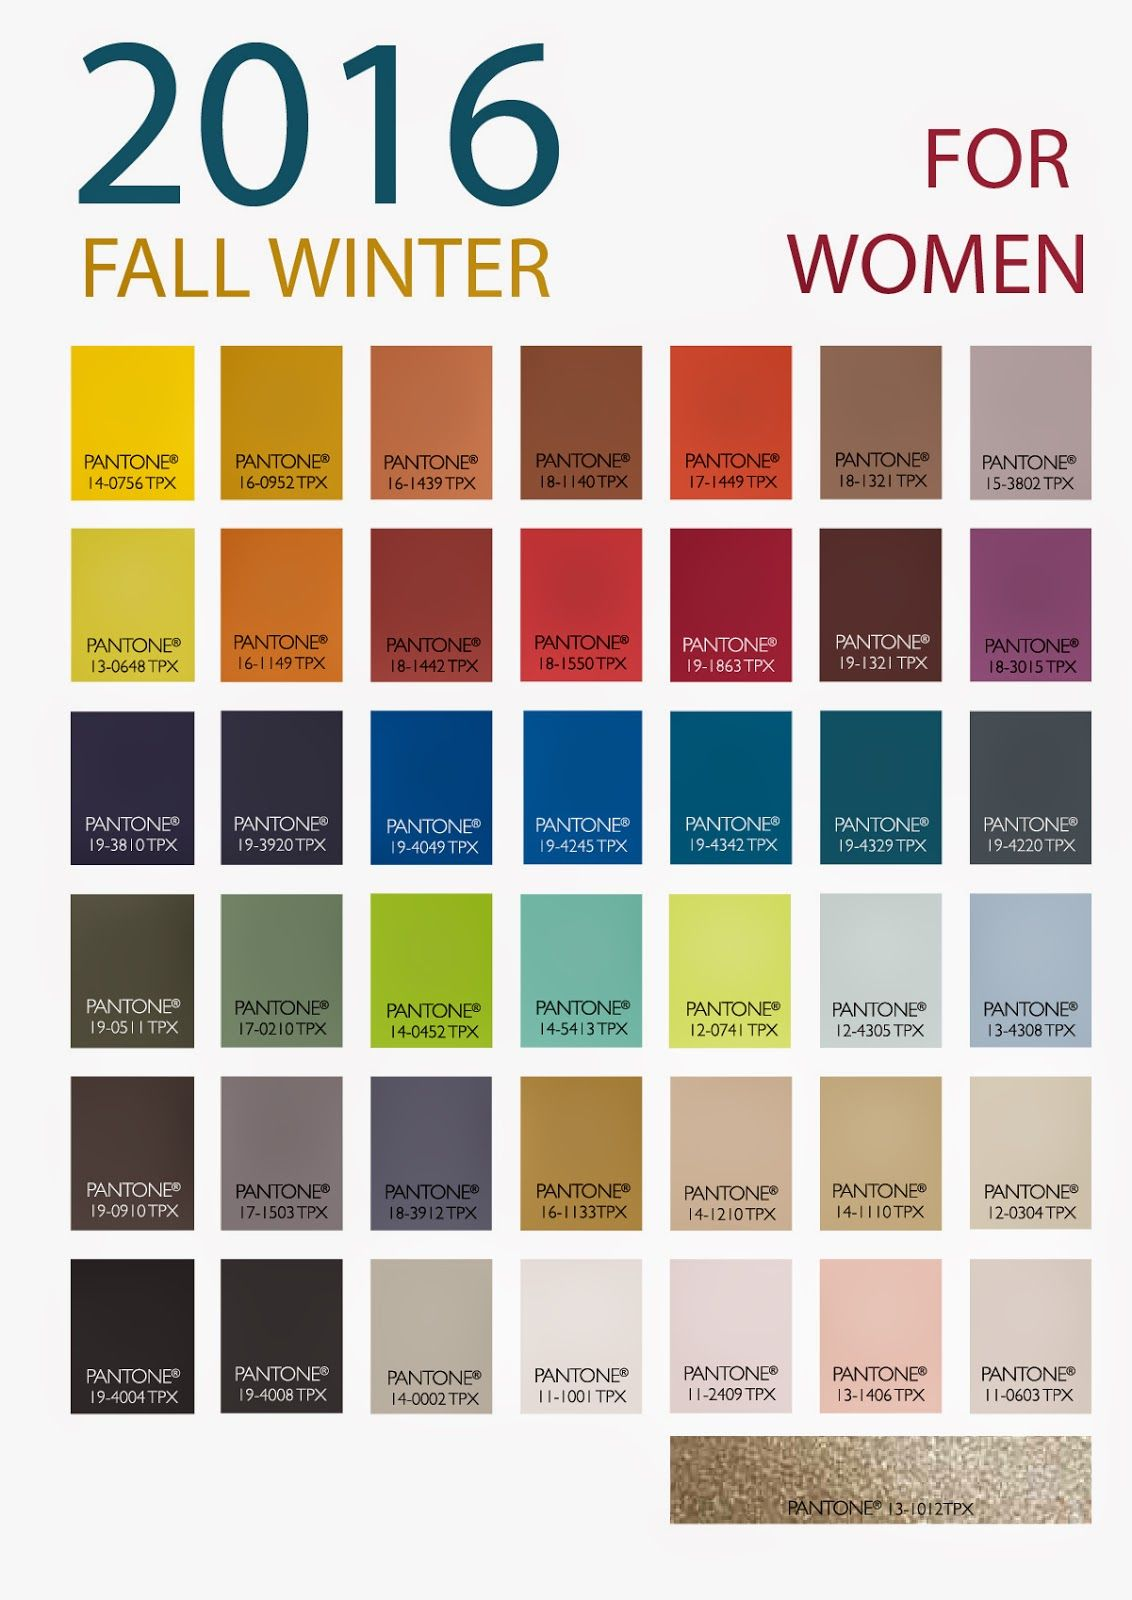 Patone S Winter 2016 Women Color Forecast From Dknits